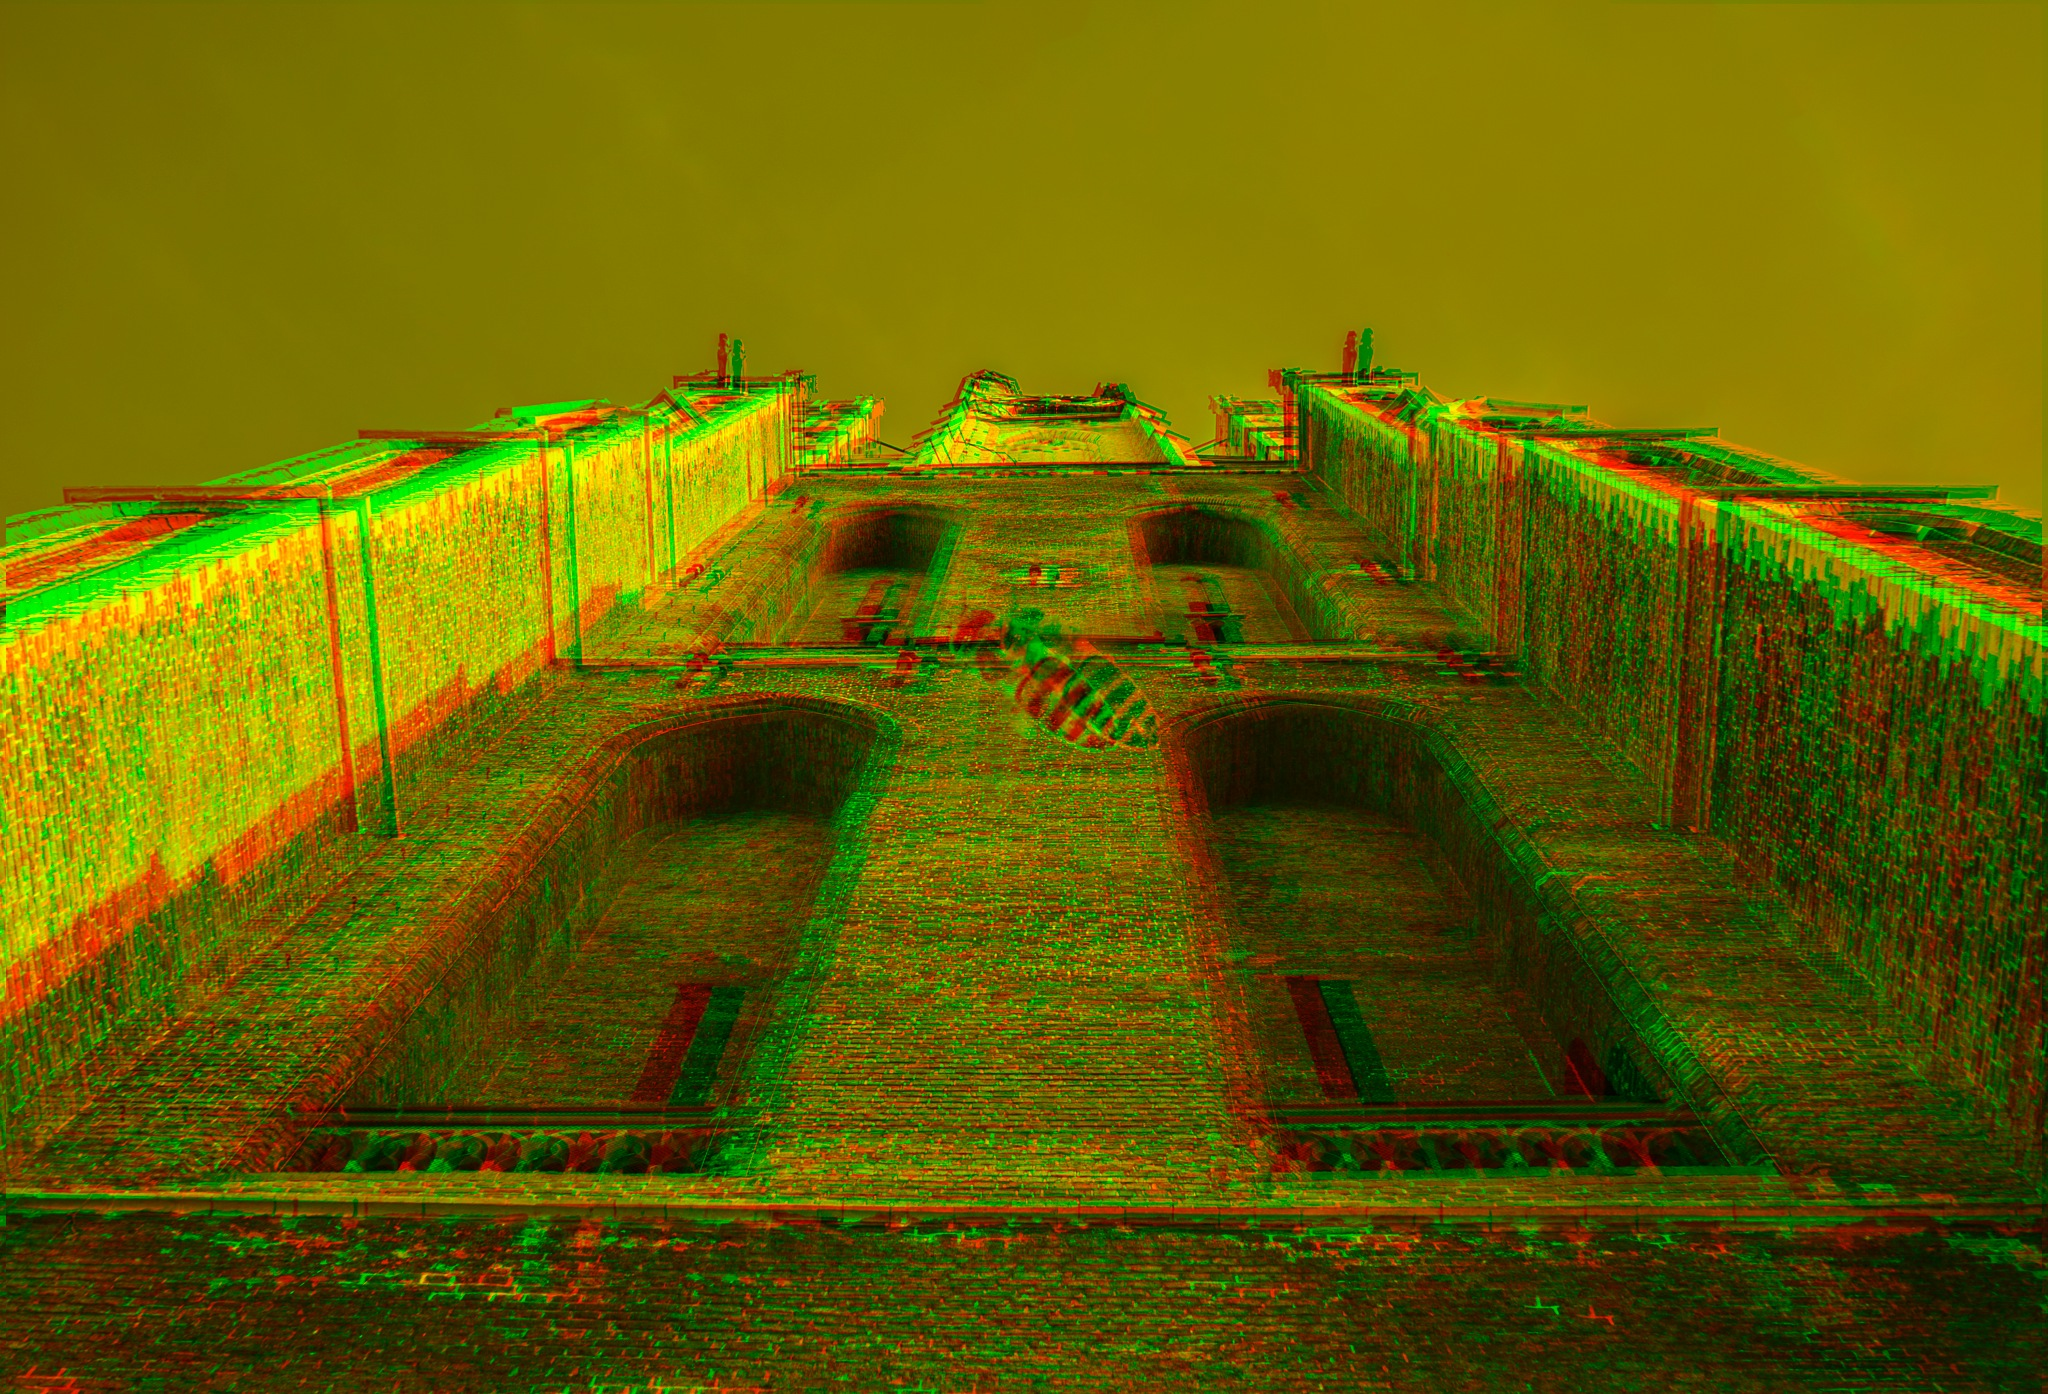 Oldfashion 3D tryout... need red-green glasses by fred.leeflang.7